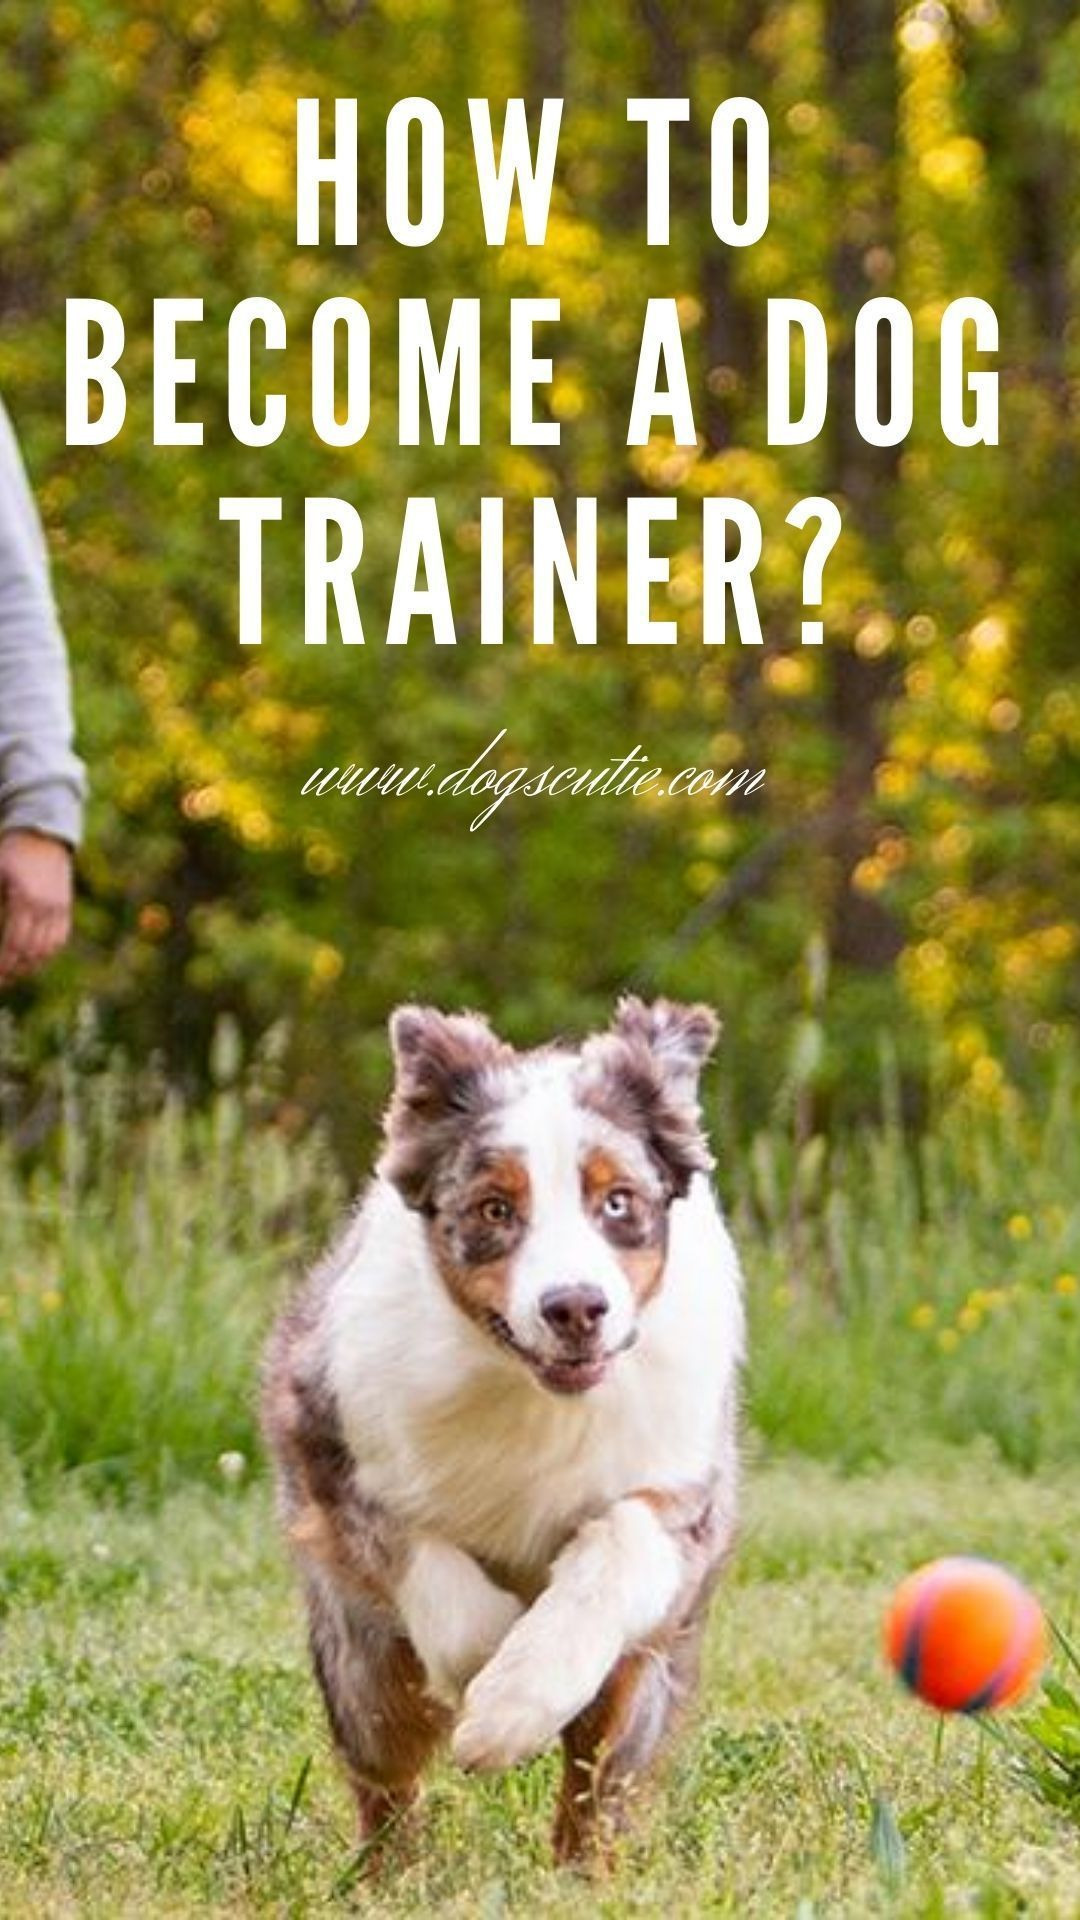 How To Become A Dog Trainer In 2020 Become A Dog Trainer Dogs Dog Trainer